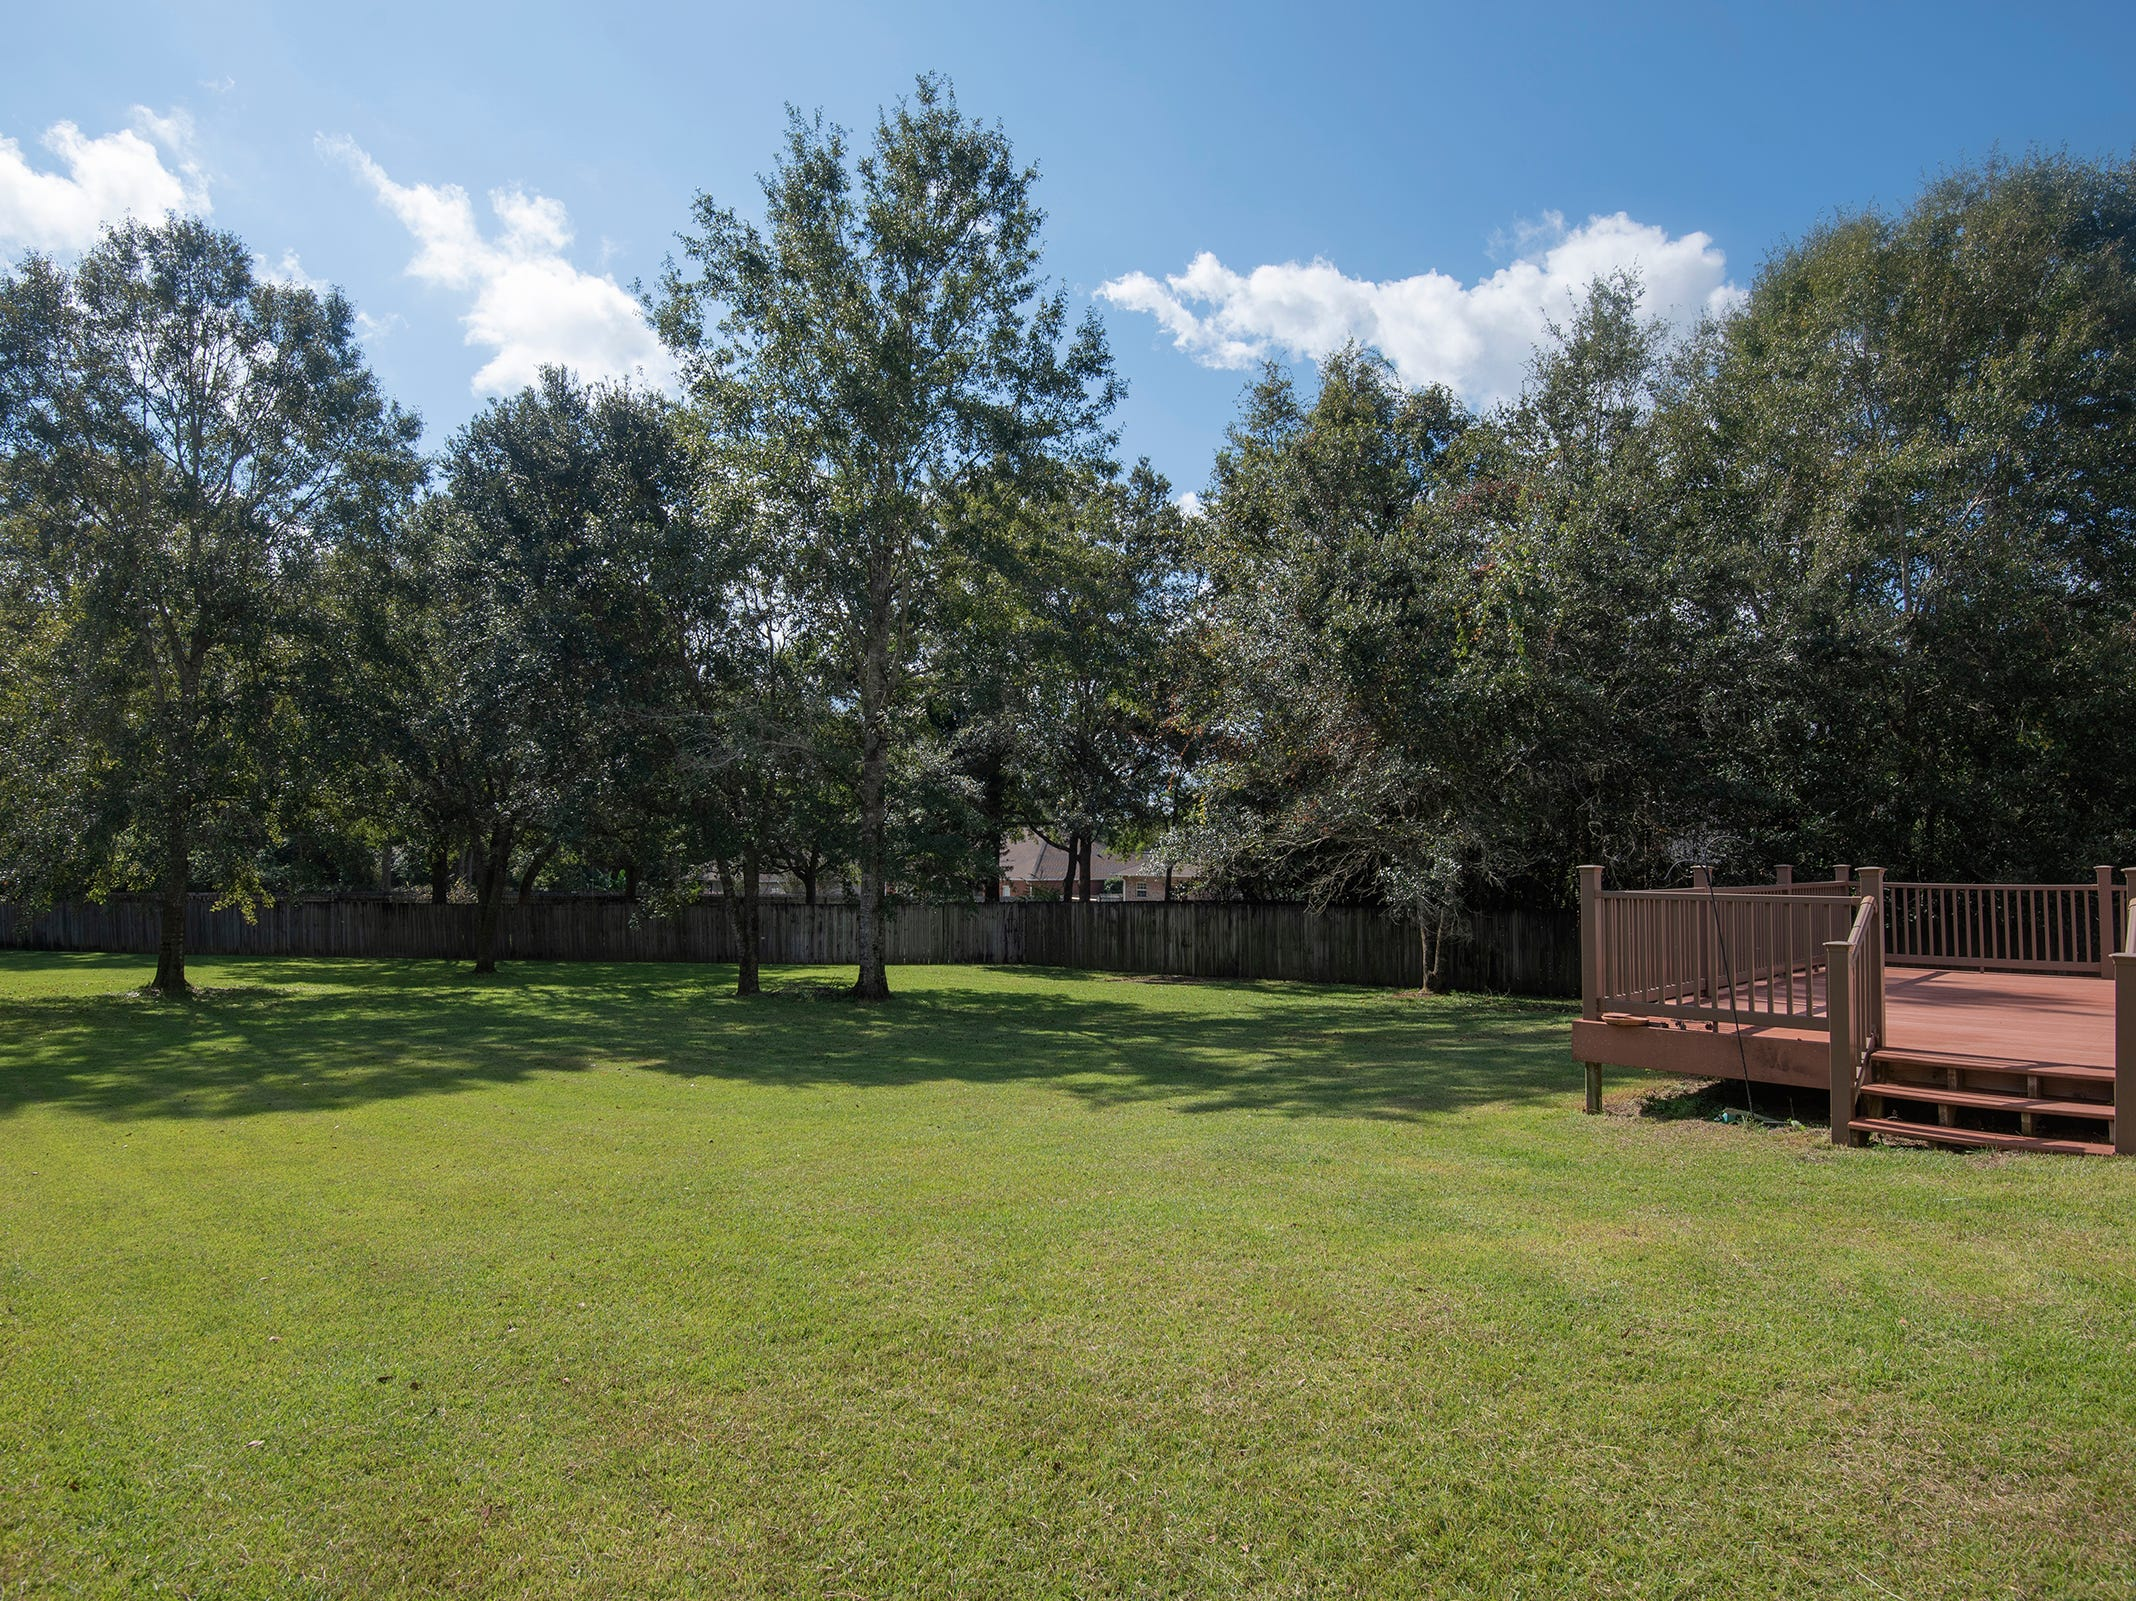 2363 Queens Ferry LaneThe backyard is open and private.